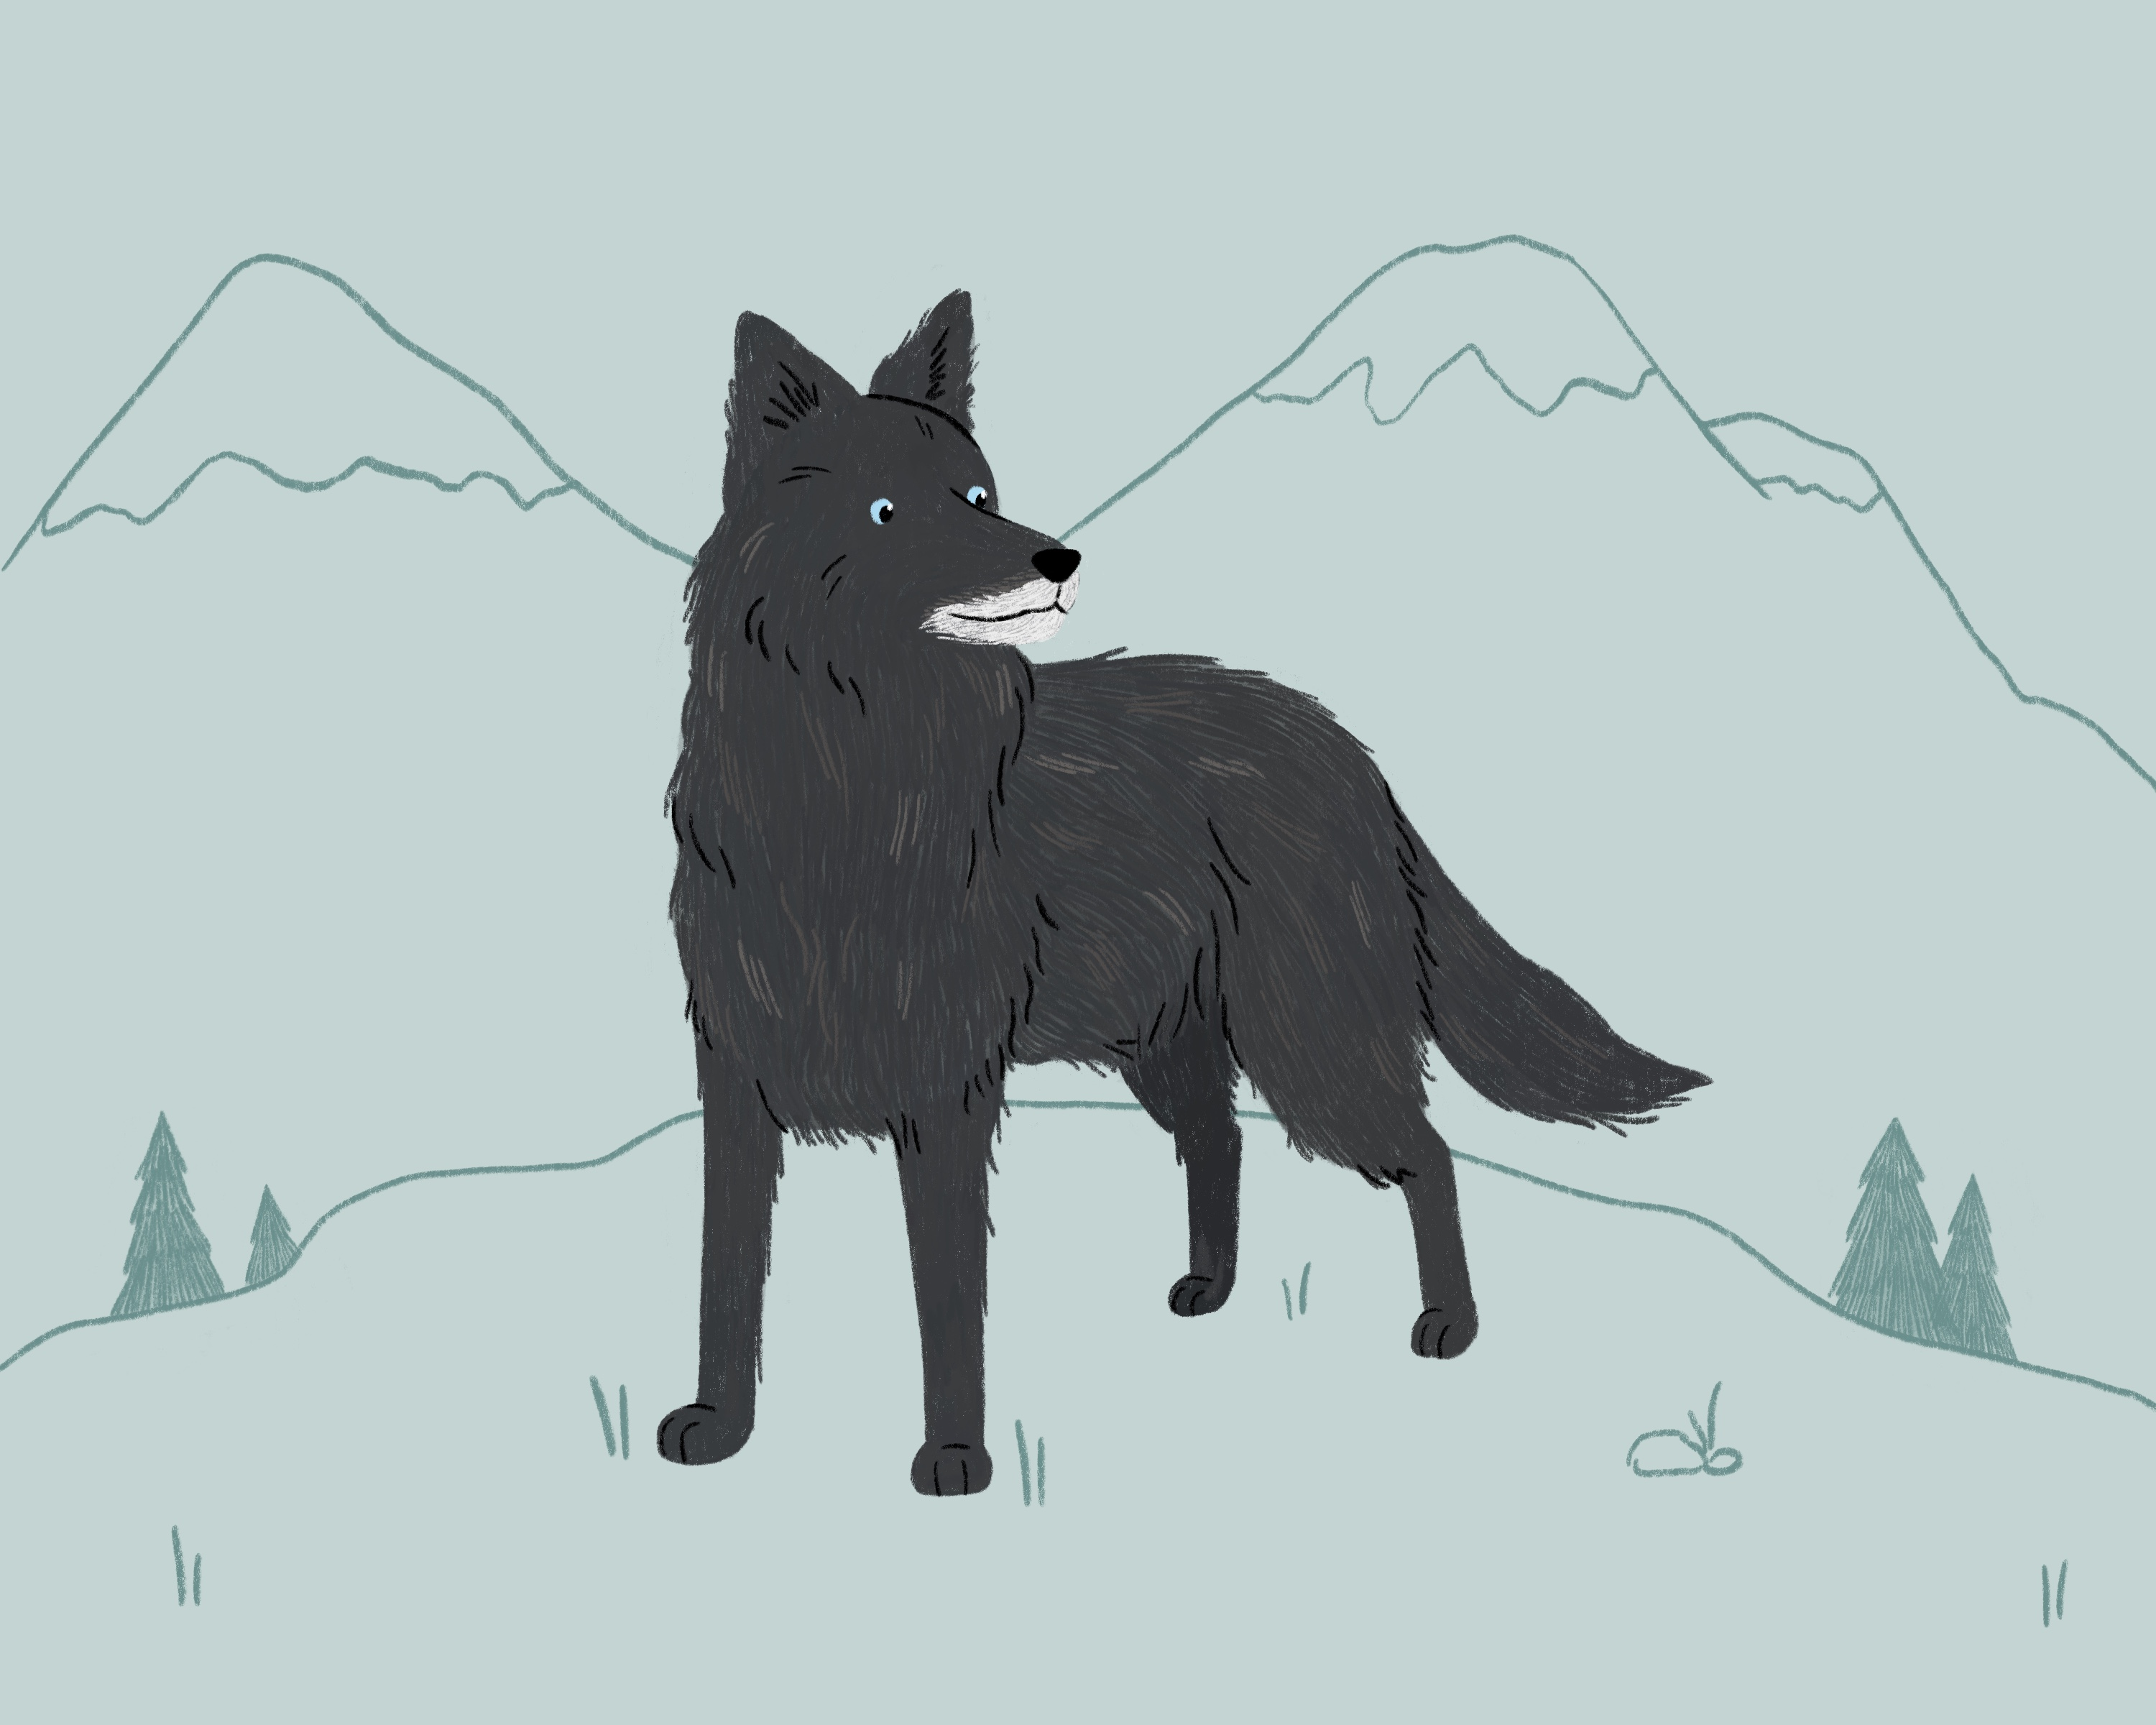 A black border collie surrounded by mountains